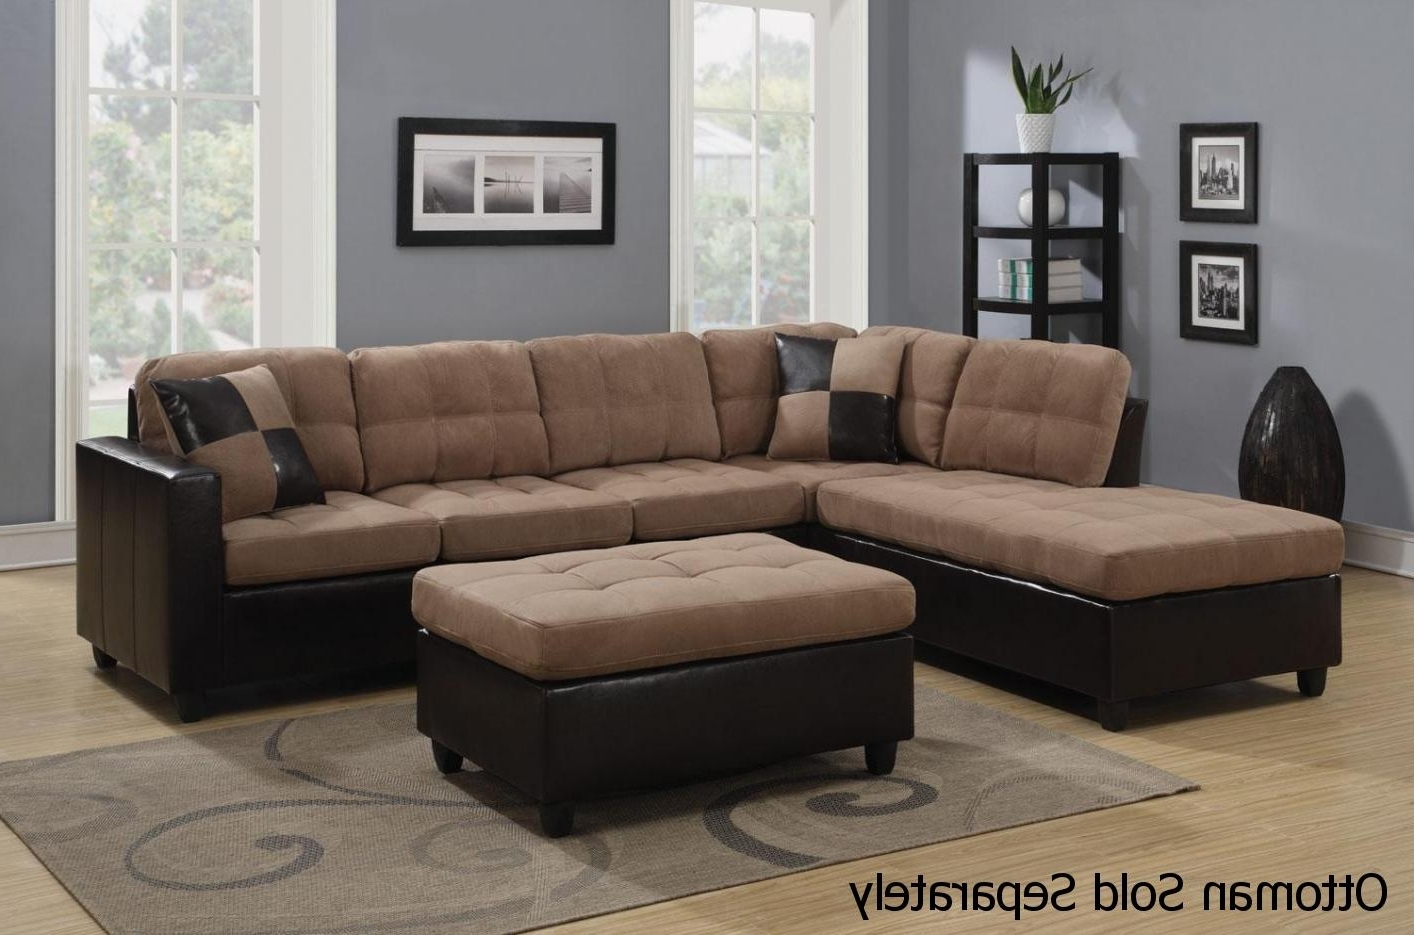 Trendy Sectional Sofas With Regard To Mallory Beige Leather Sectional Sofa – Steal A Sofa Furniture (View 19 of 20)